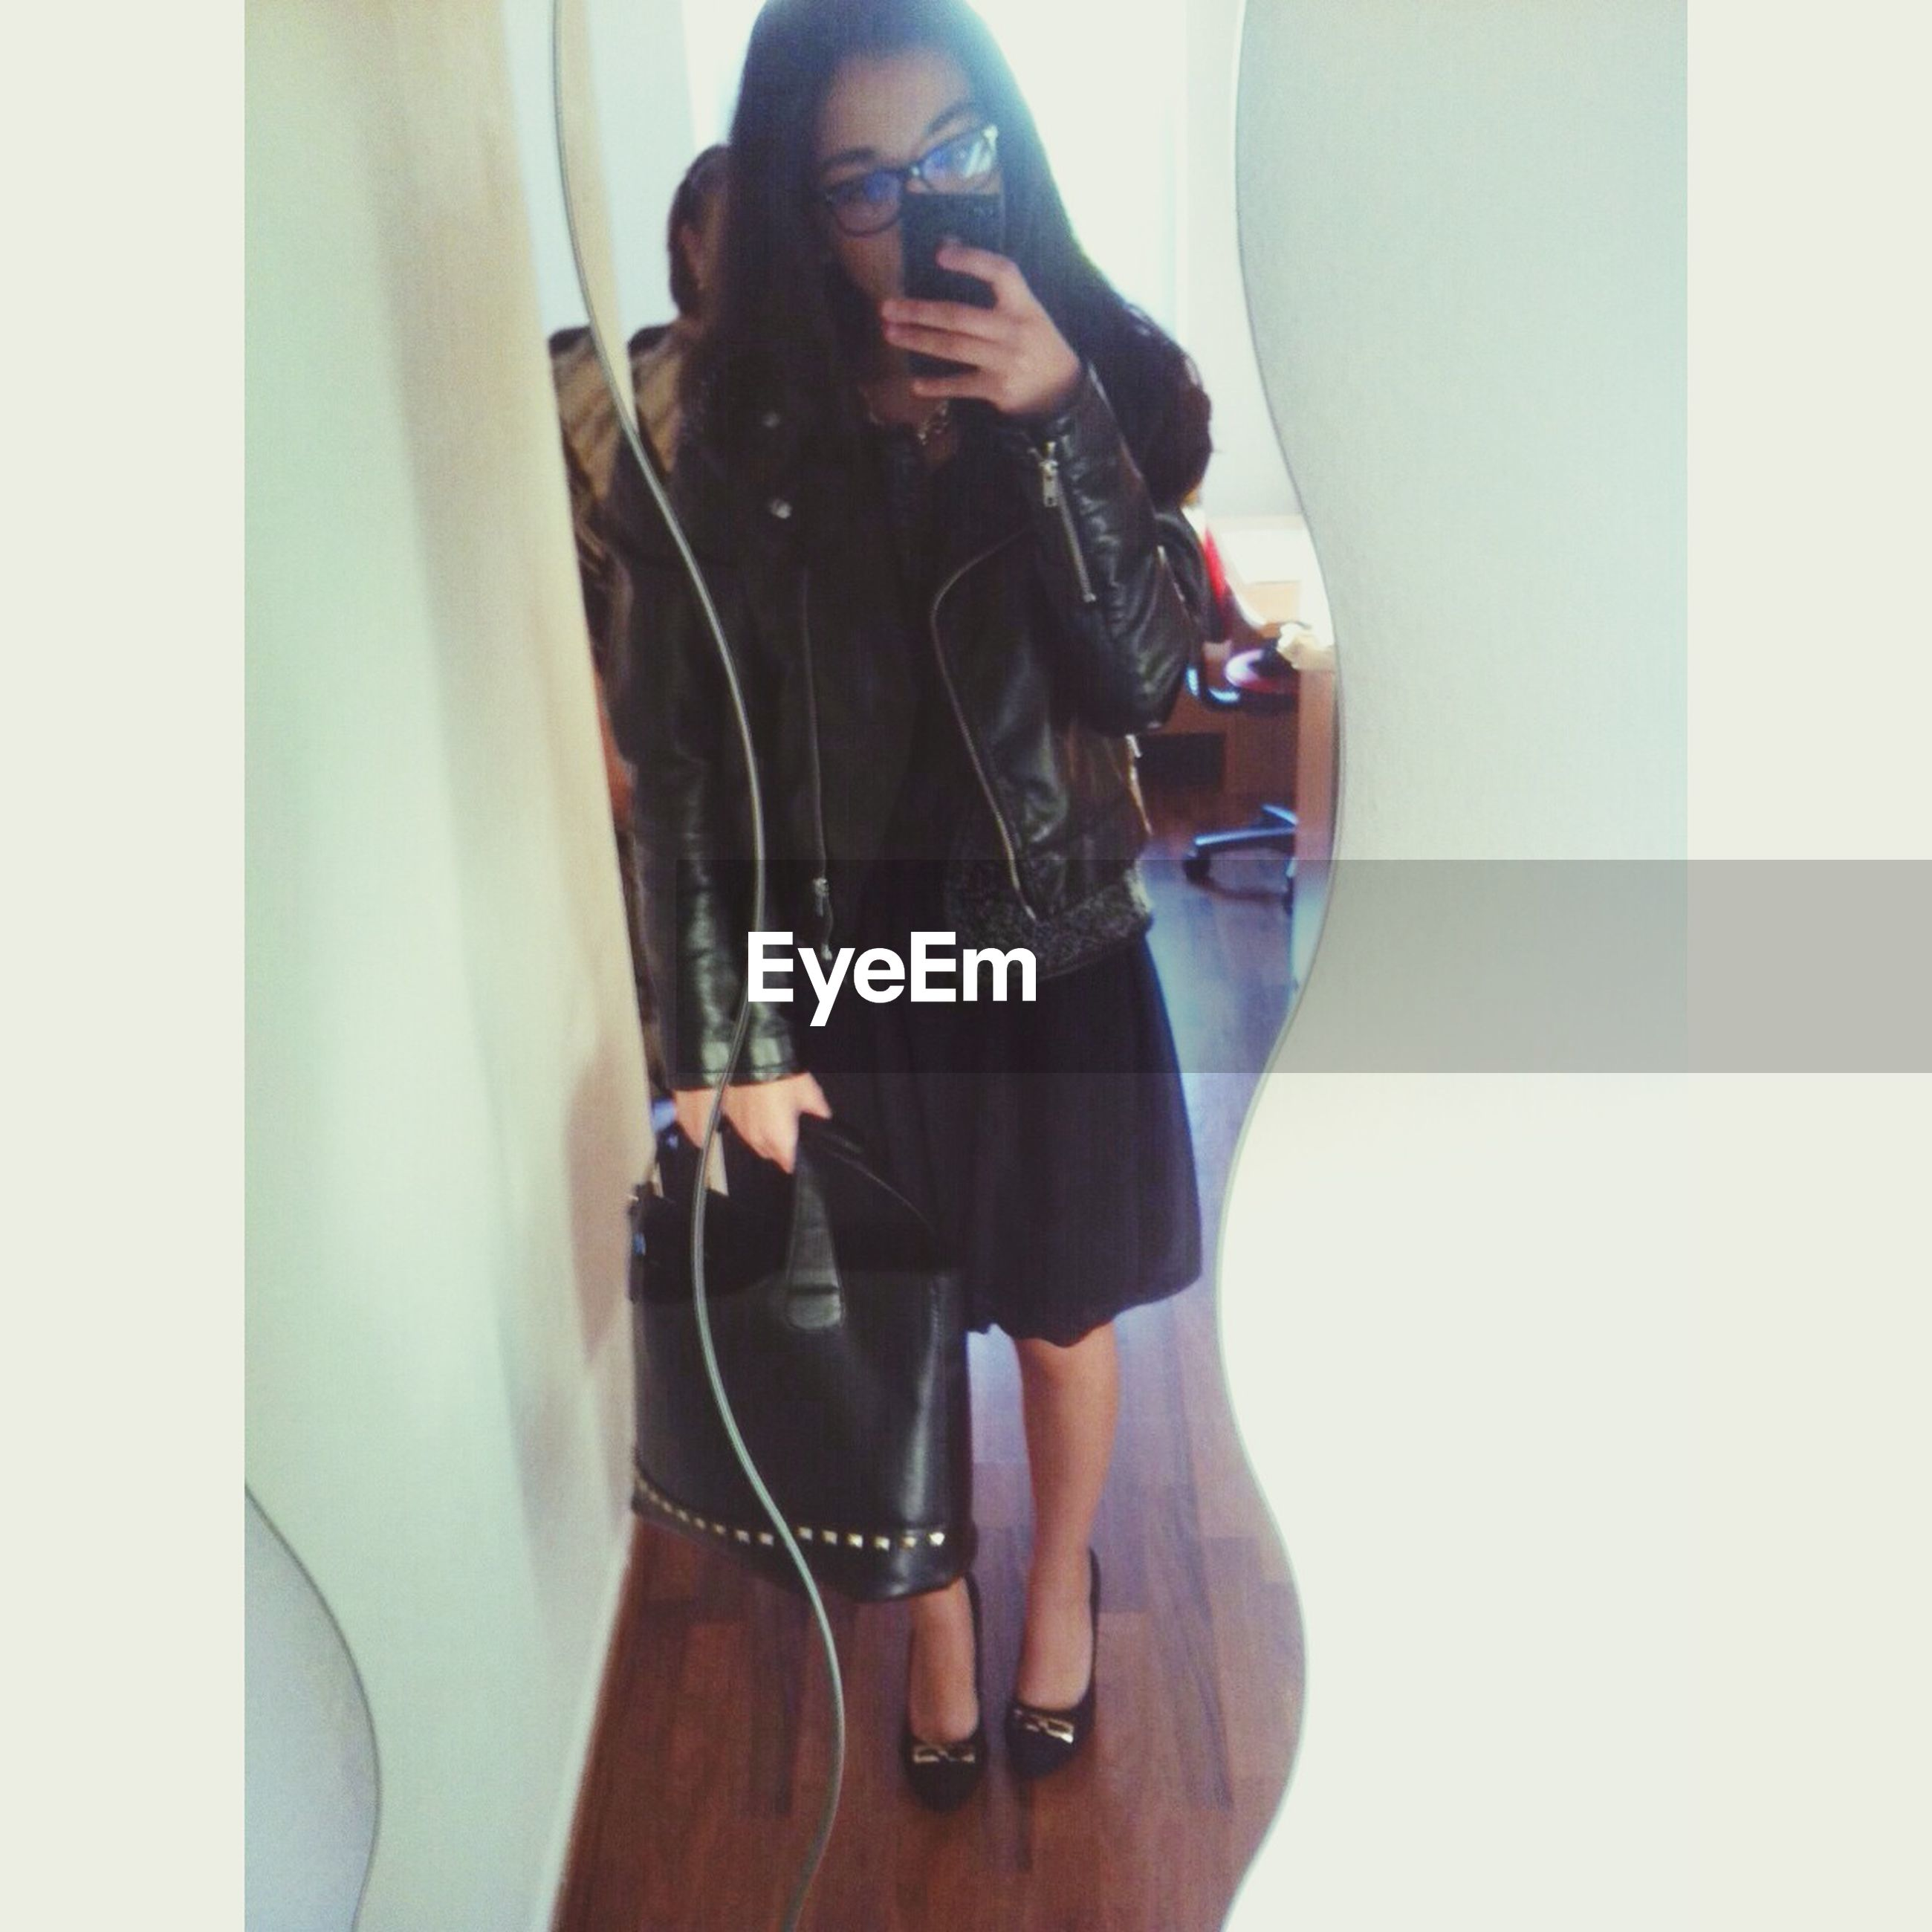 indoors, young adult, lifestyles, casual clothing, leisure activity, young women, standing, front view, person, full length, three quarter length, technology, holding, photography themes, wireless technology, photographing, fashion